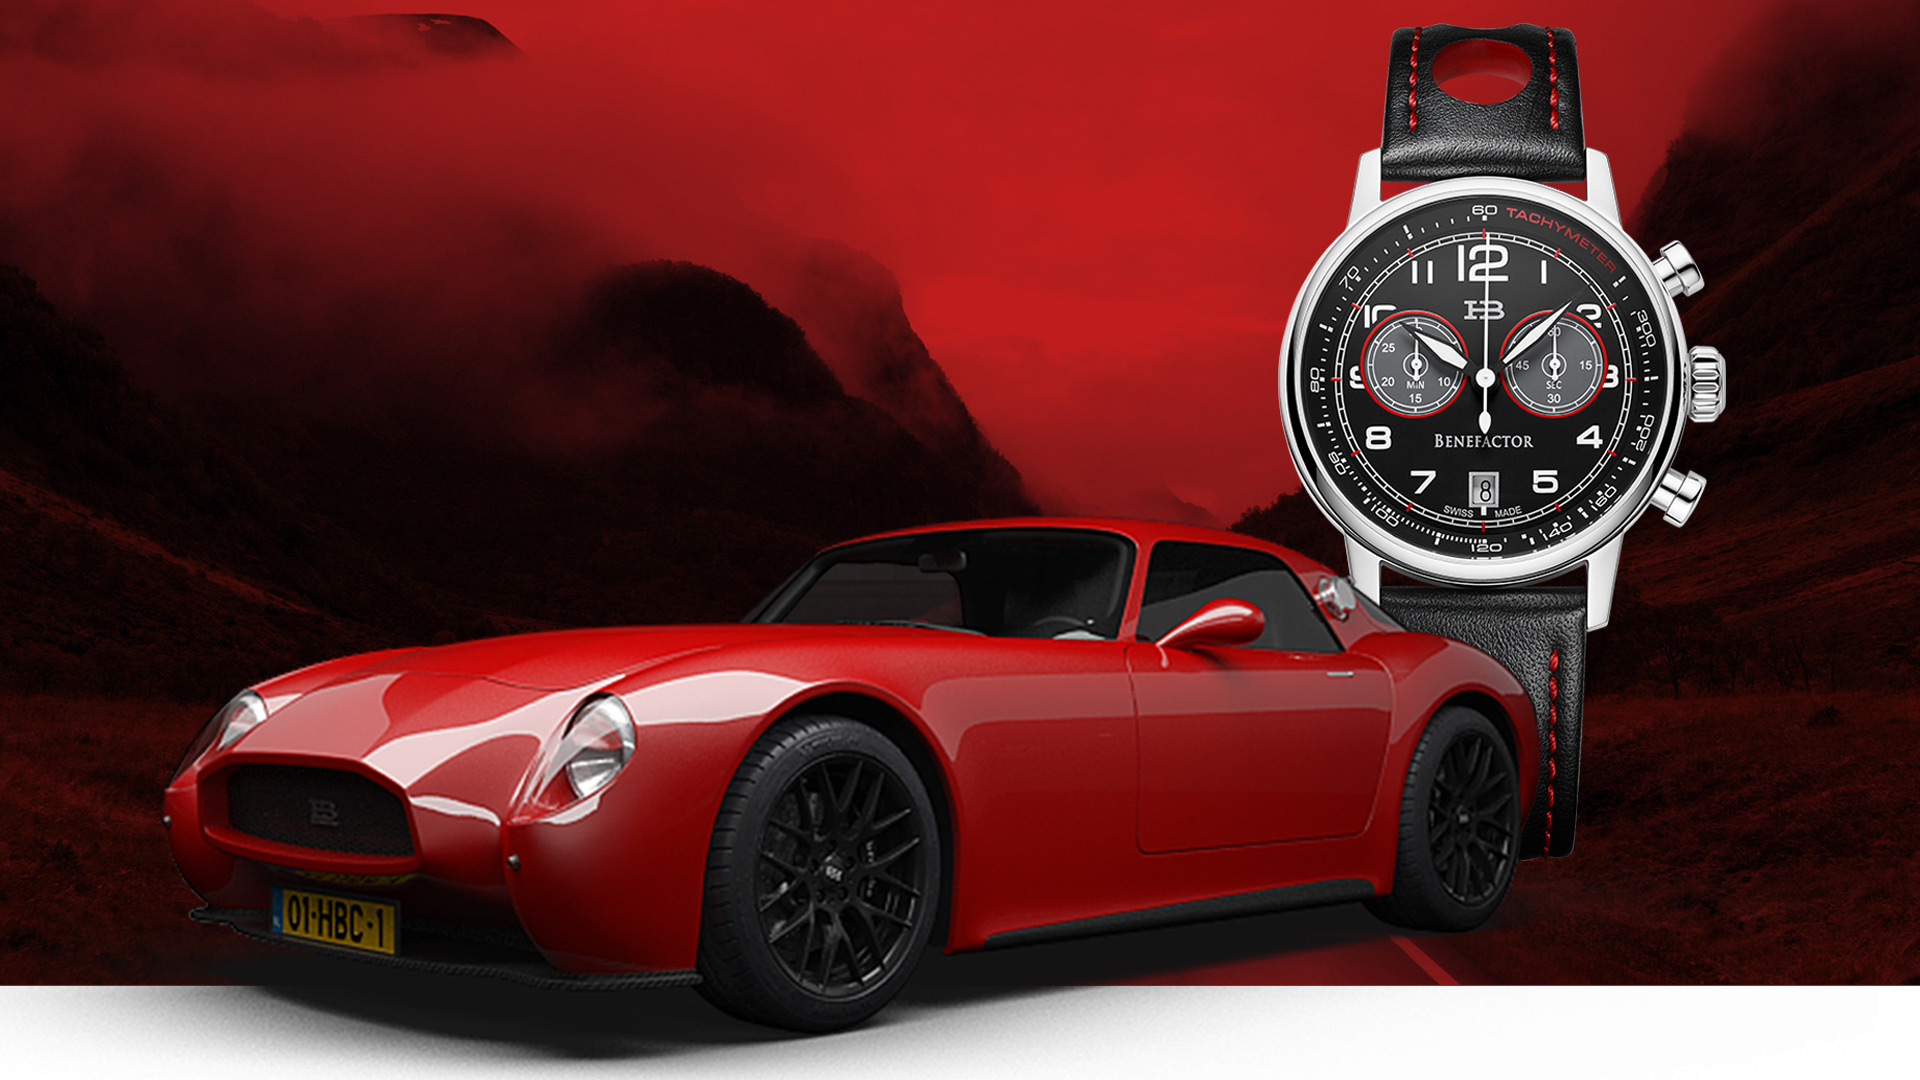 Buy this seriously cool Swiss watch and help get the Huet Brothers Coupe into production